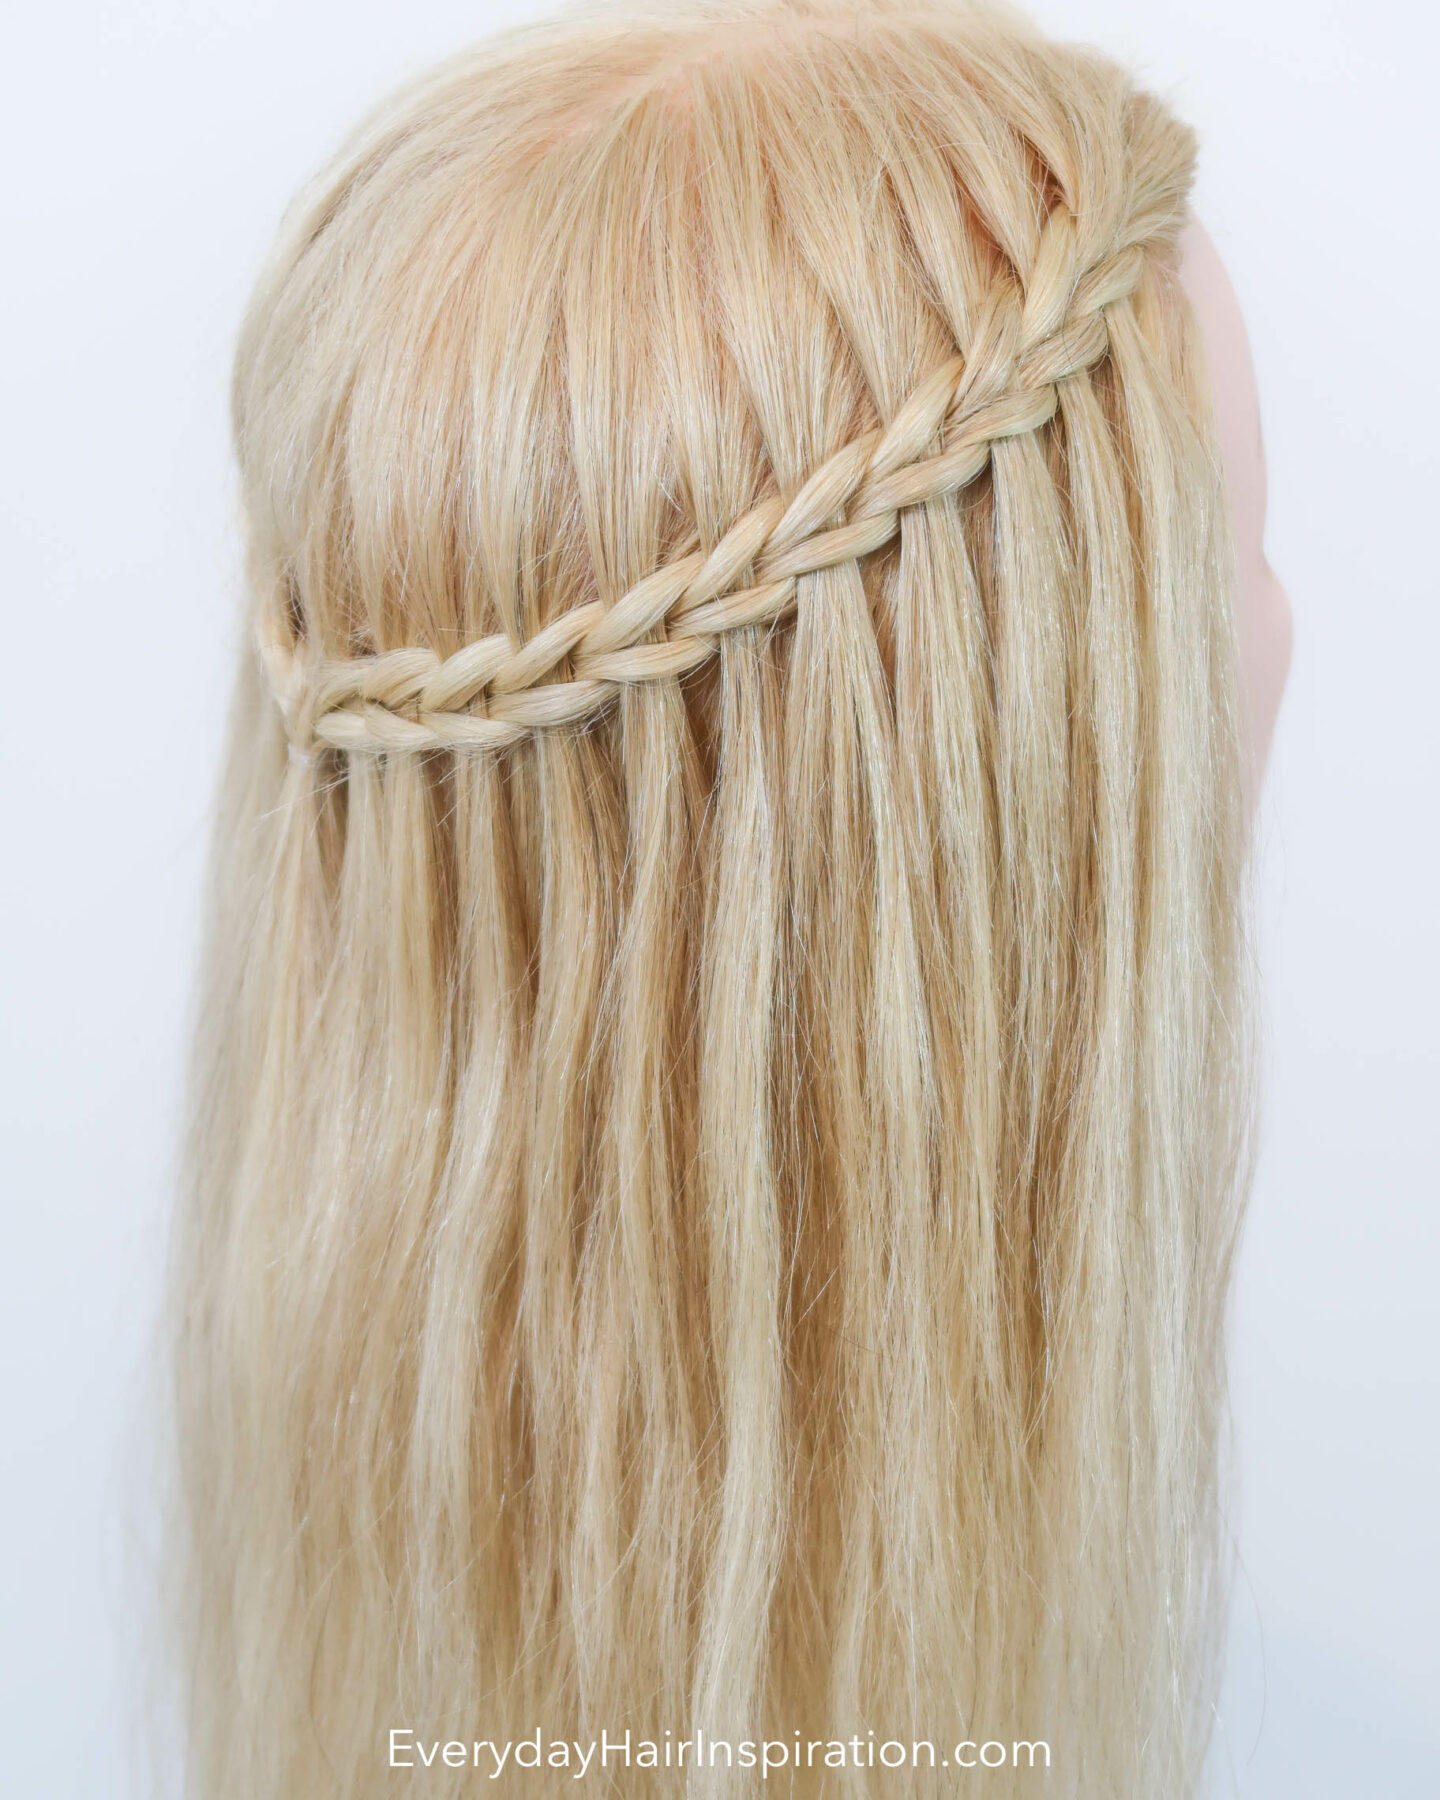 Blonde hairdresser head with a half up half down hair styles with a scissor waterfall braid, seen from the back at an angle.